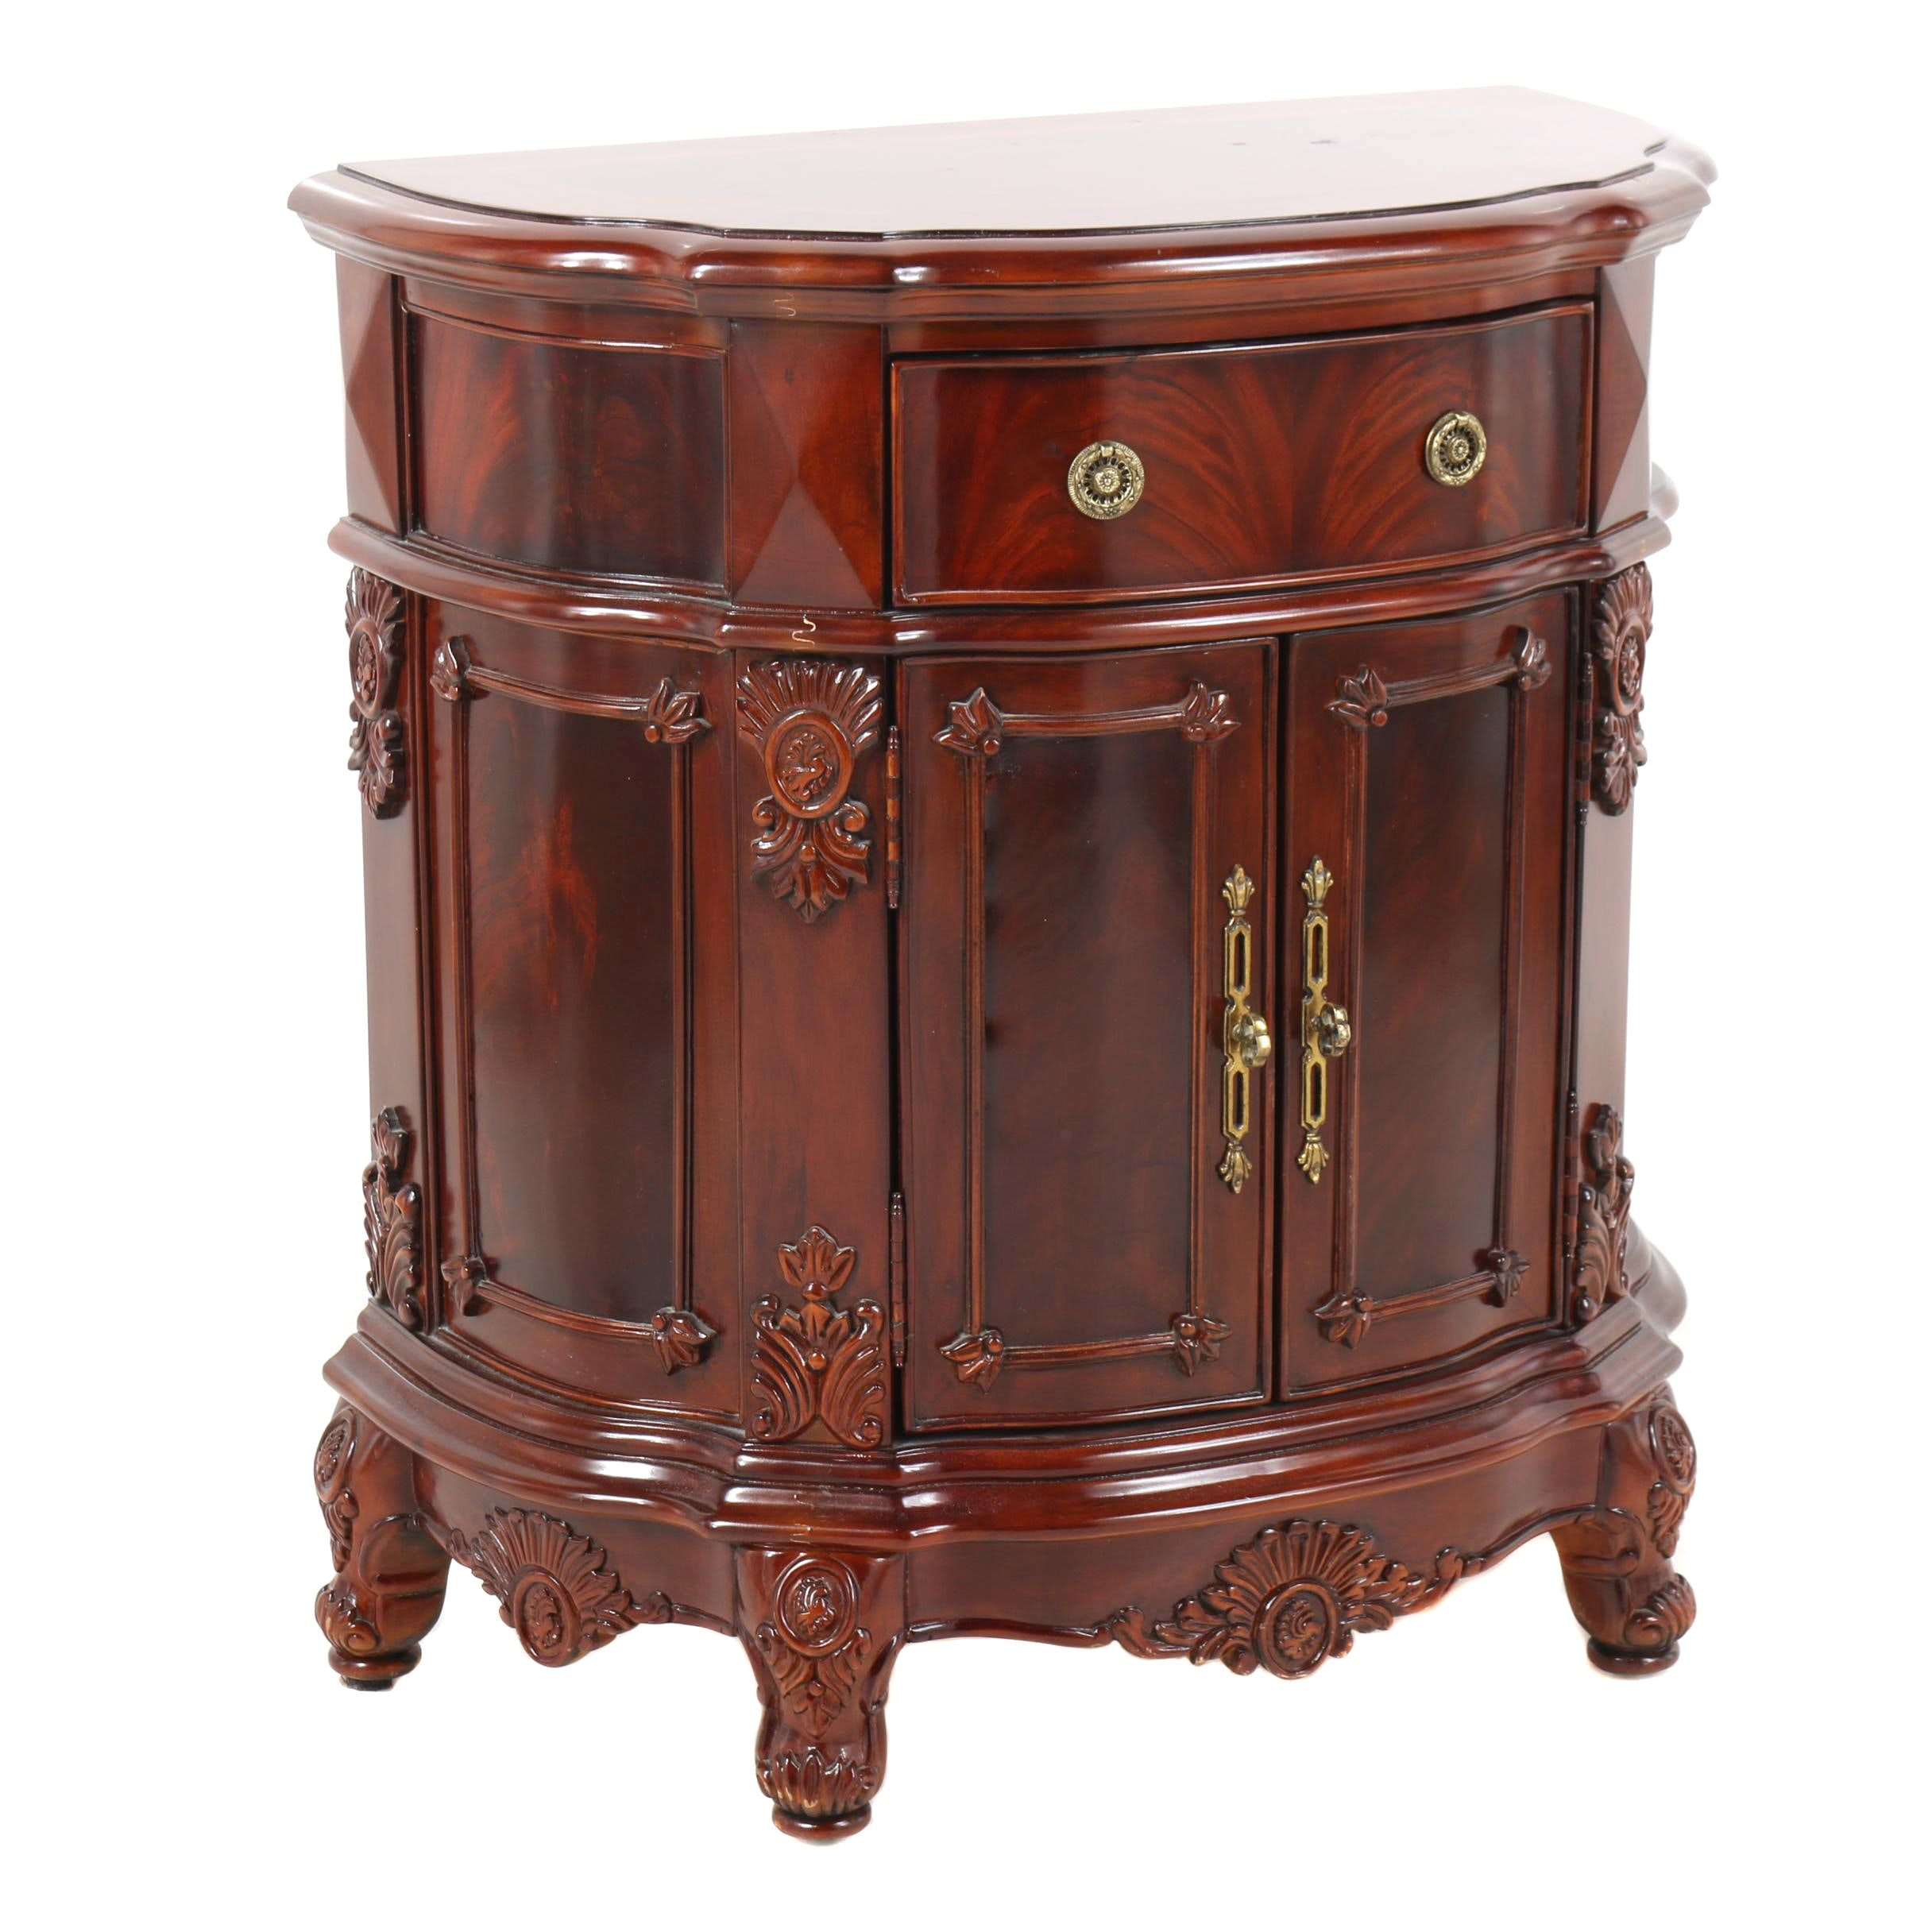 French Provincial Style Burl Wood Demilune Nightstand by Regency House, 21st C.